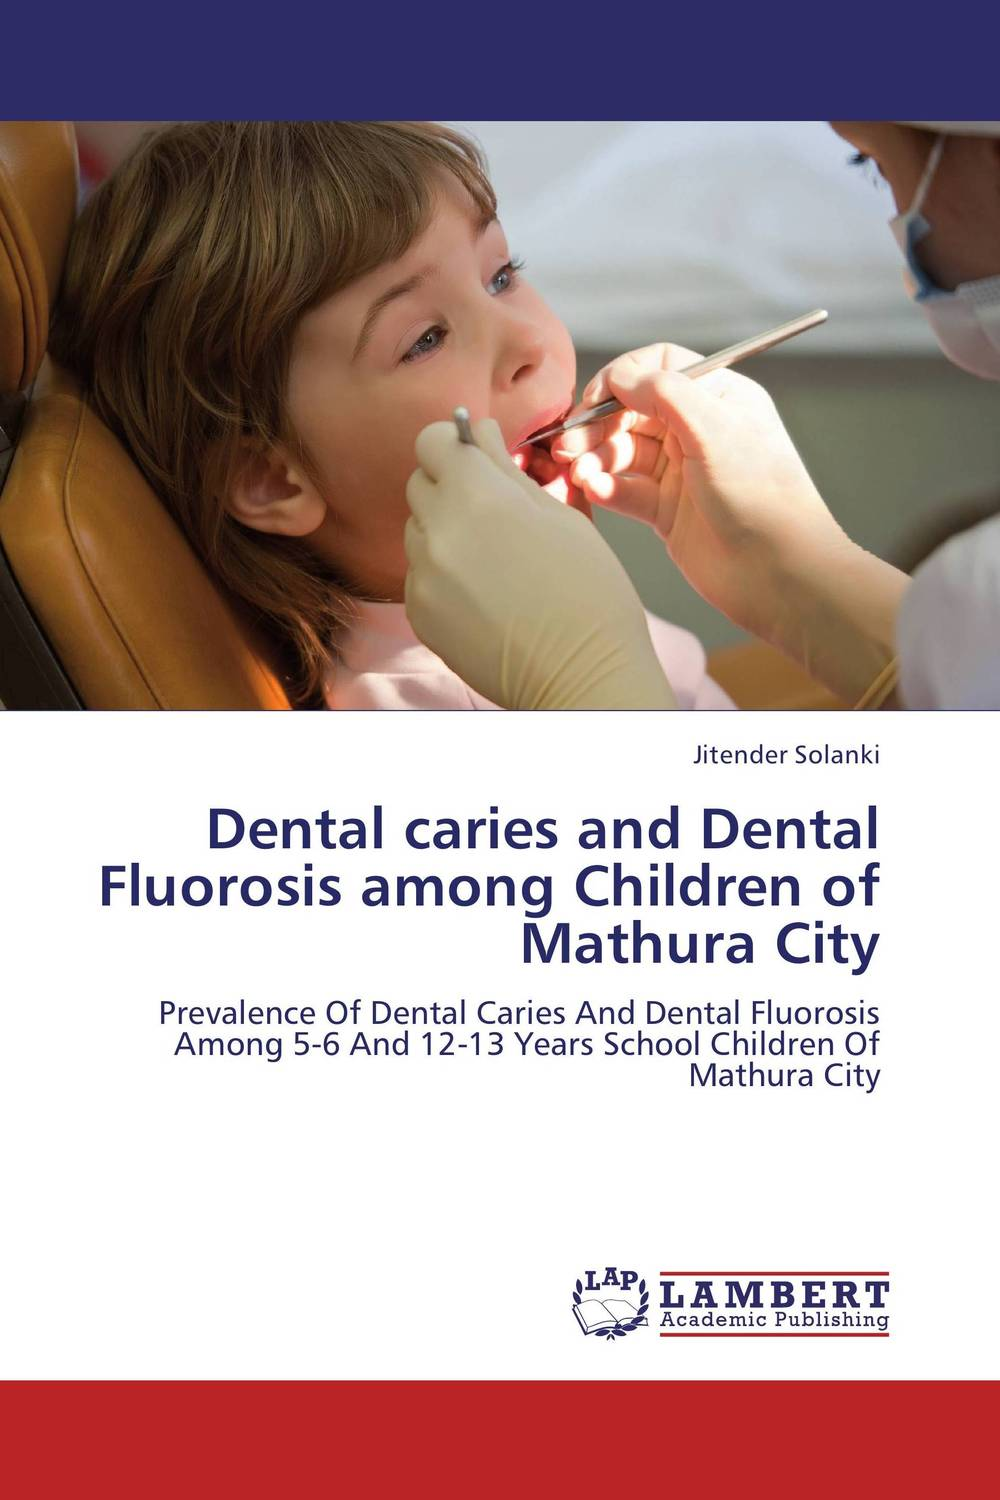 Dental caries and Dental Fluorosis among Children of Mathura City